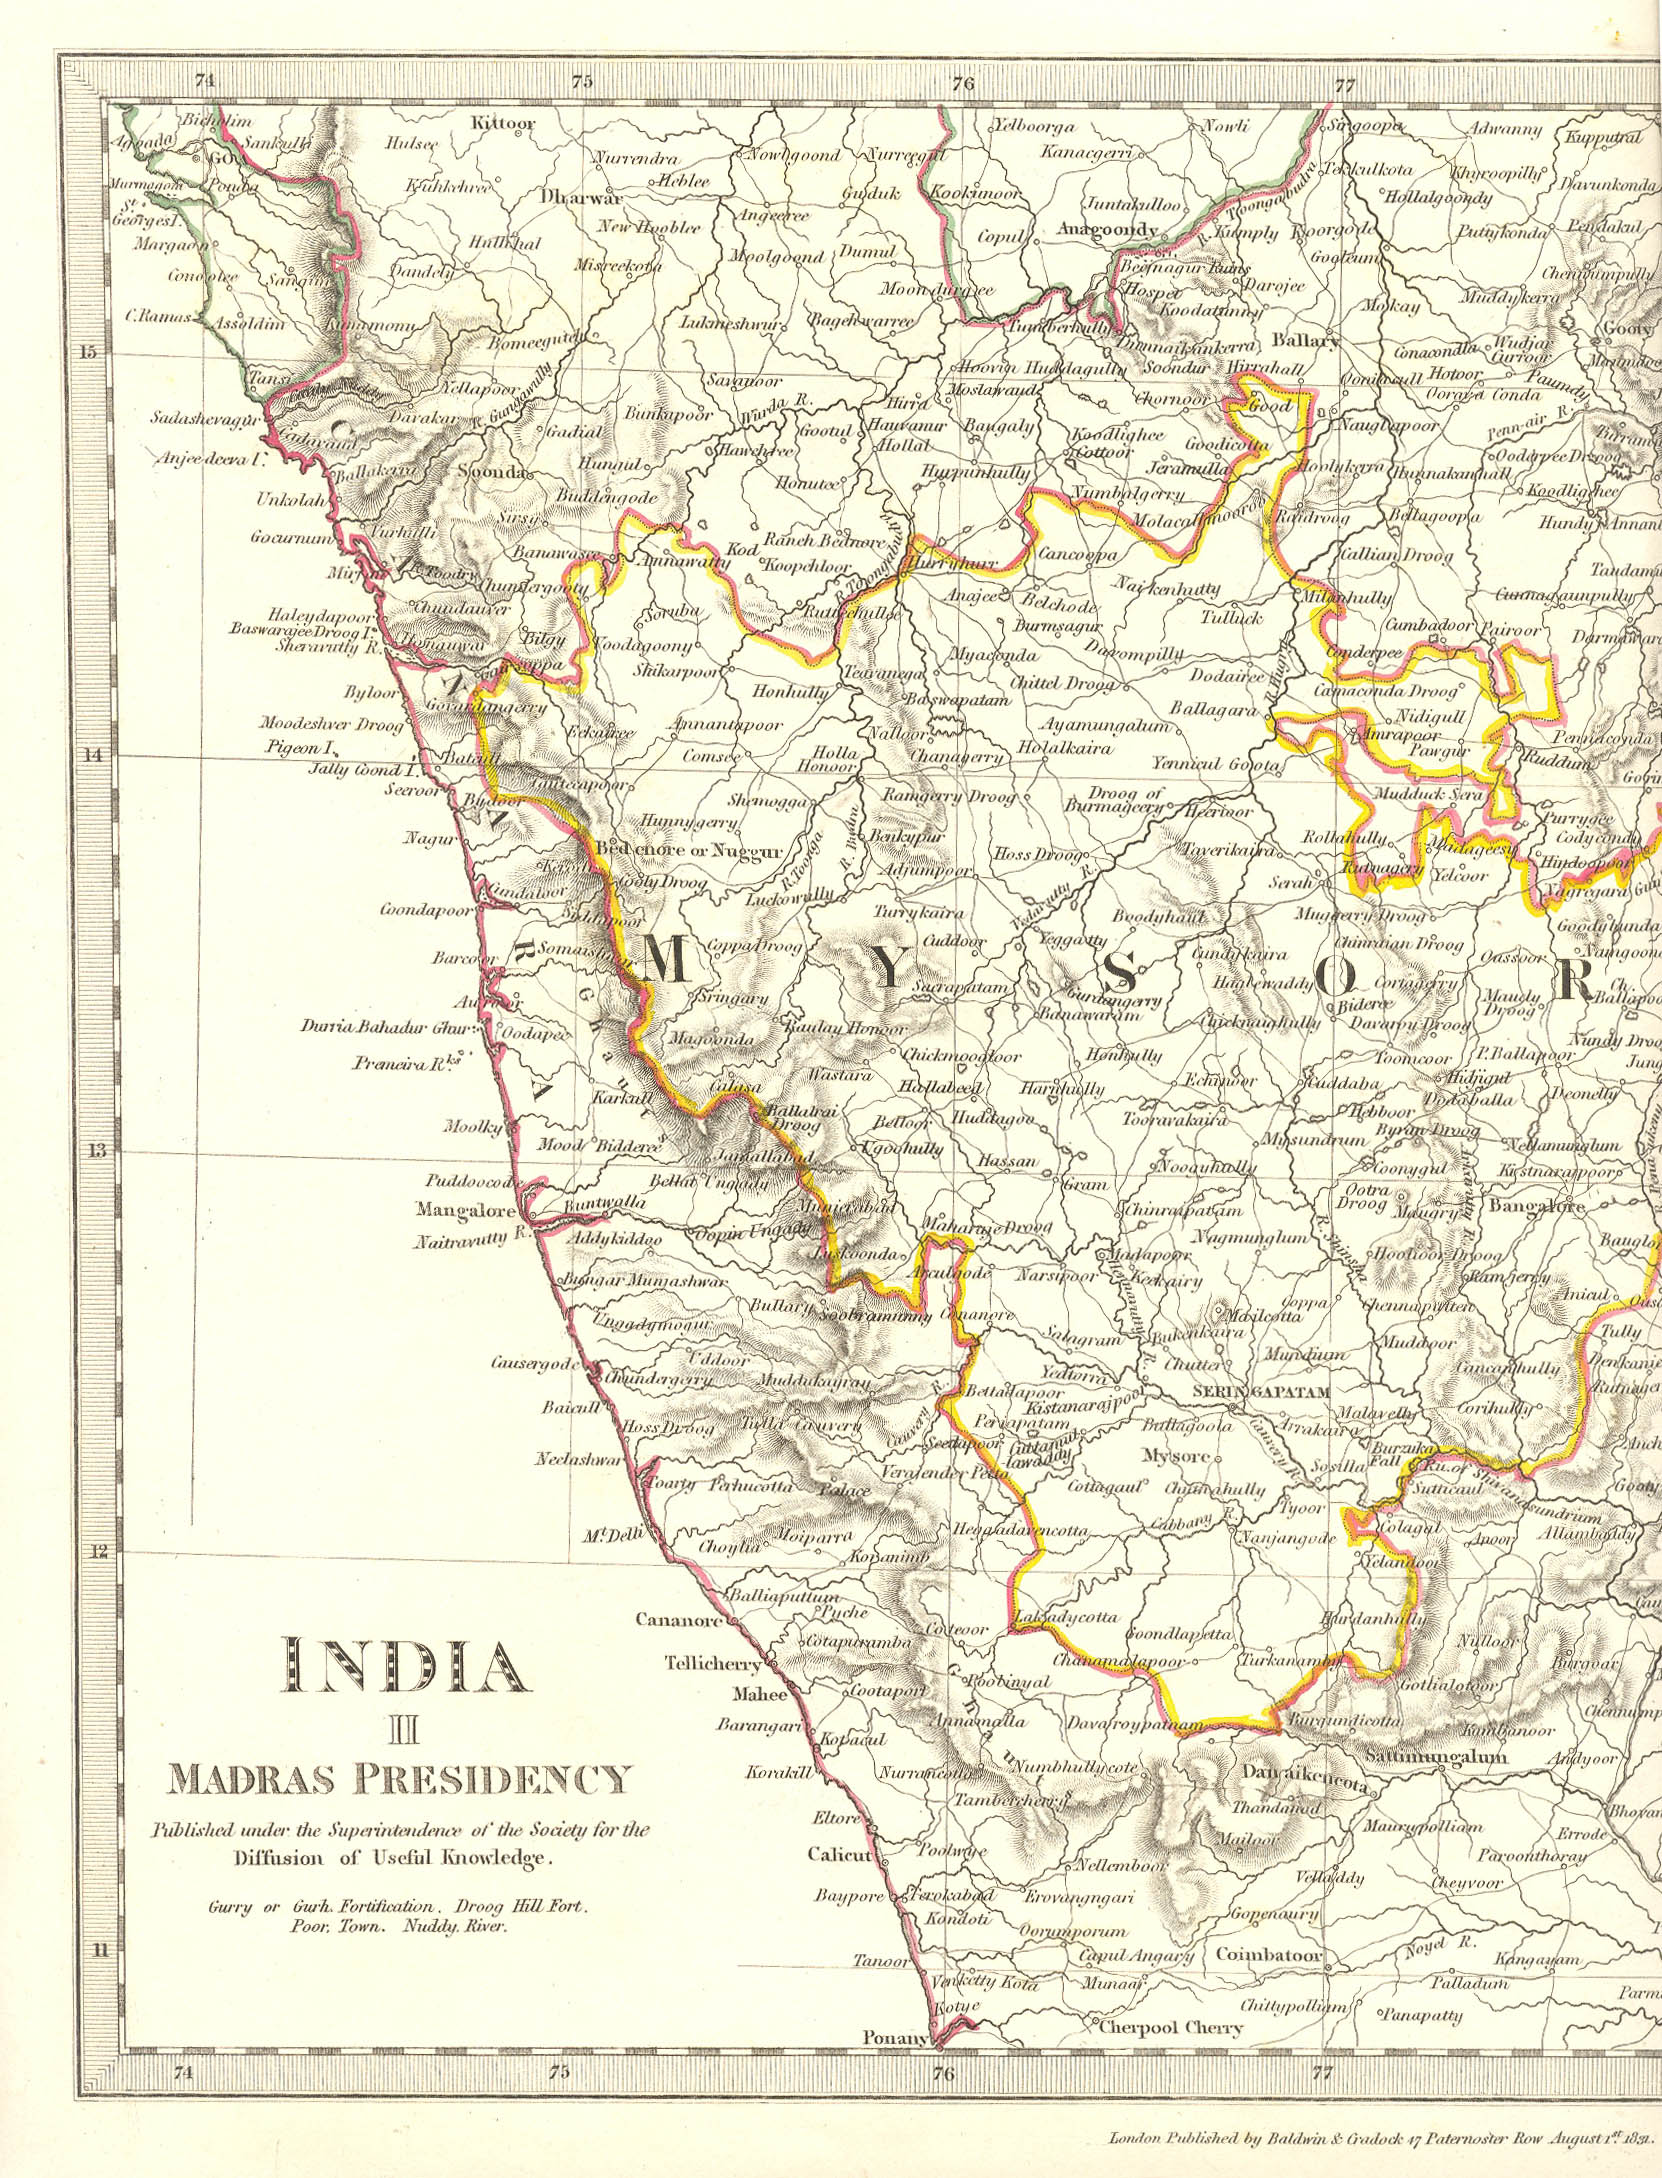 02map Madras On Map on seaside on map, highway on map, banaras on map, lincoln city on map, redmond on map, tillamook on map, karachi on map, gold beach on map, oshkosh on map, roseburg on map, silverton on map, goa on map, pizza on map, bombay on map, lahore on map, cascadia on map, mysore on map, calcutta on map, medford on map, chittagong on map,